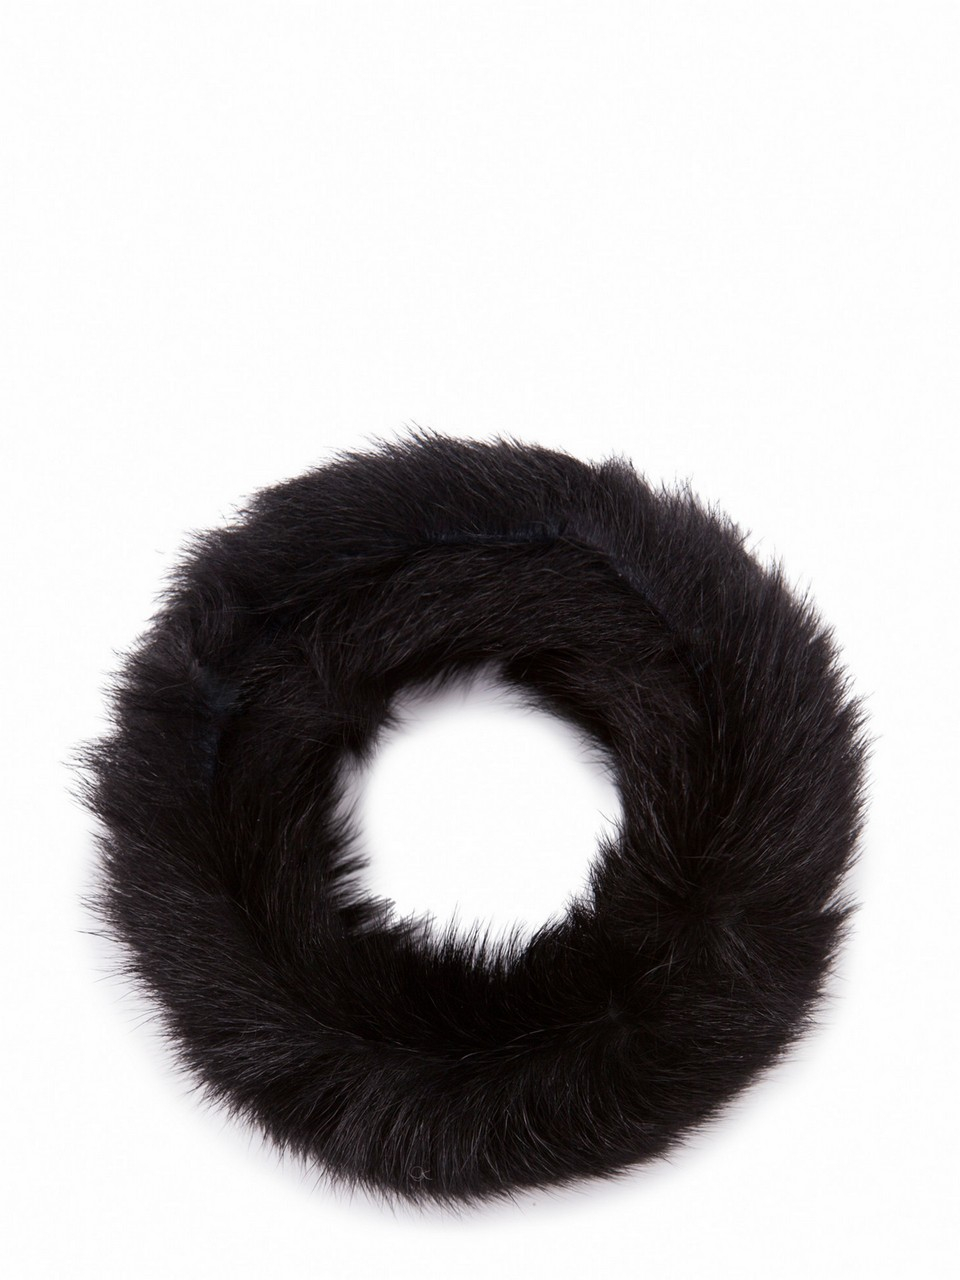 Rabbit Fur Bracelet